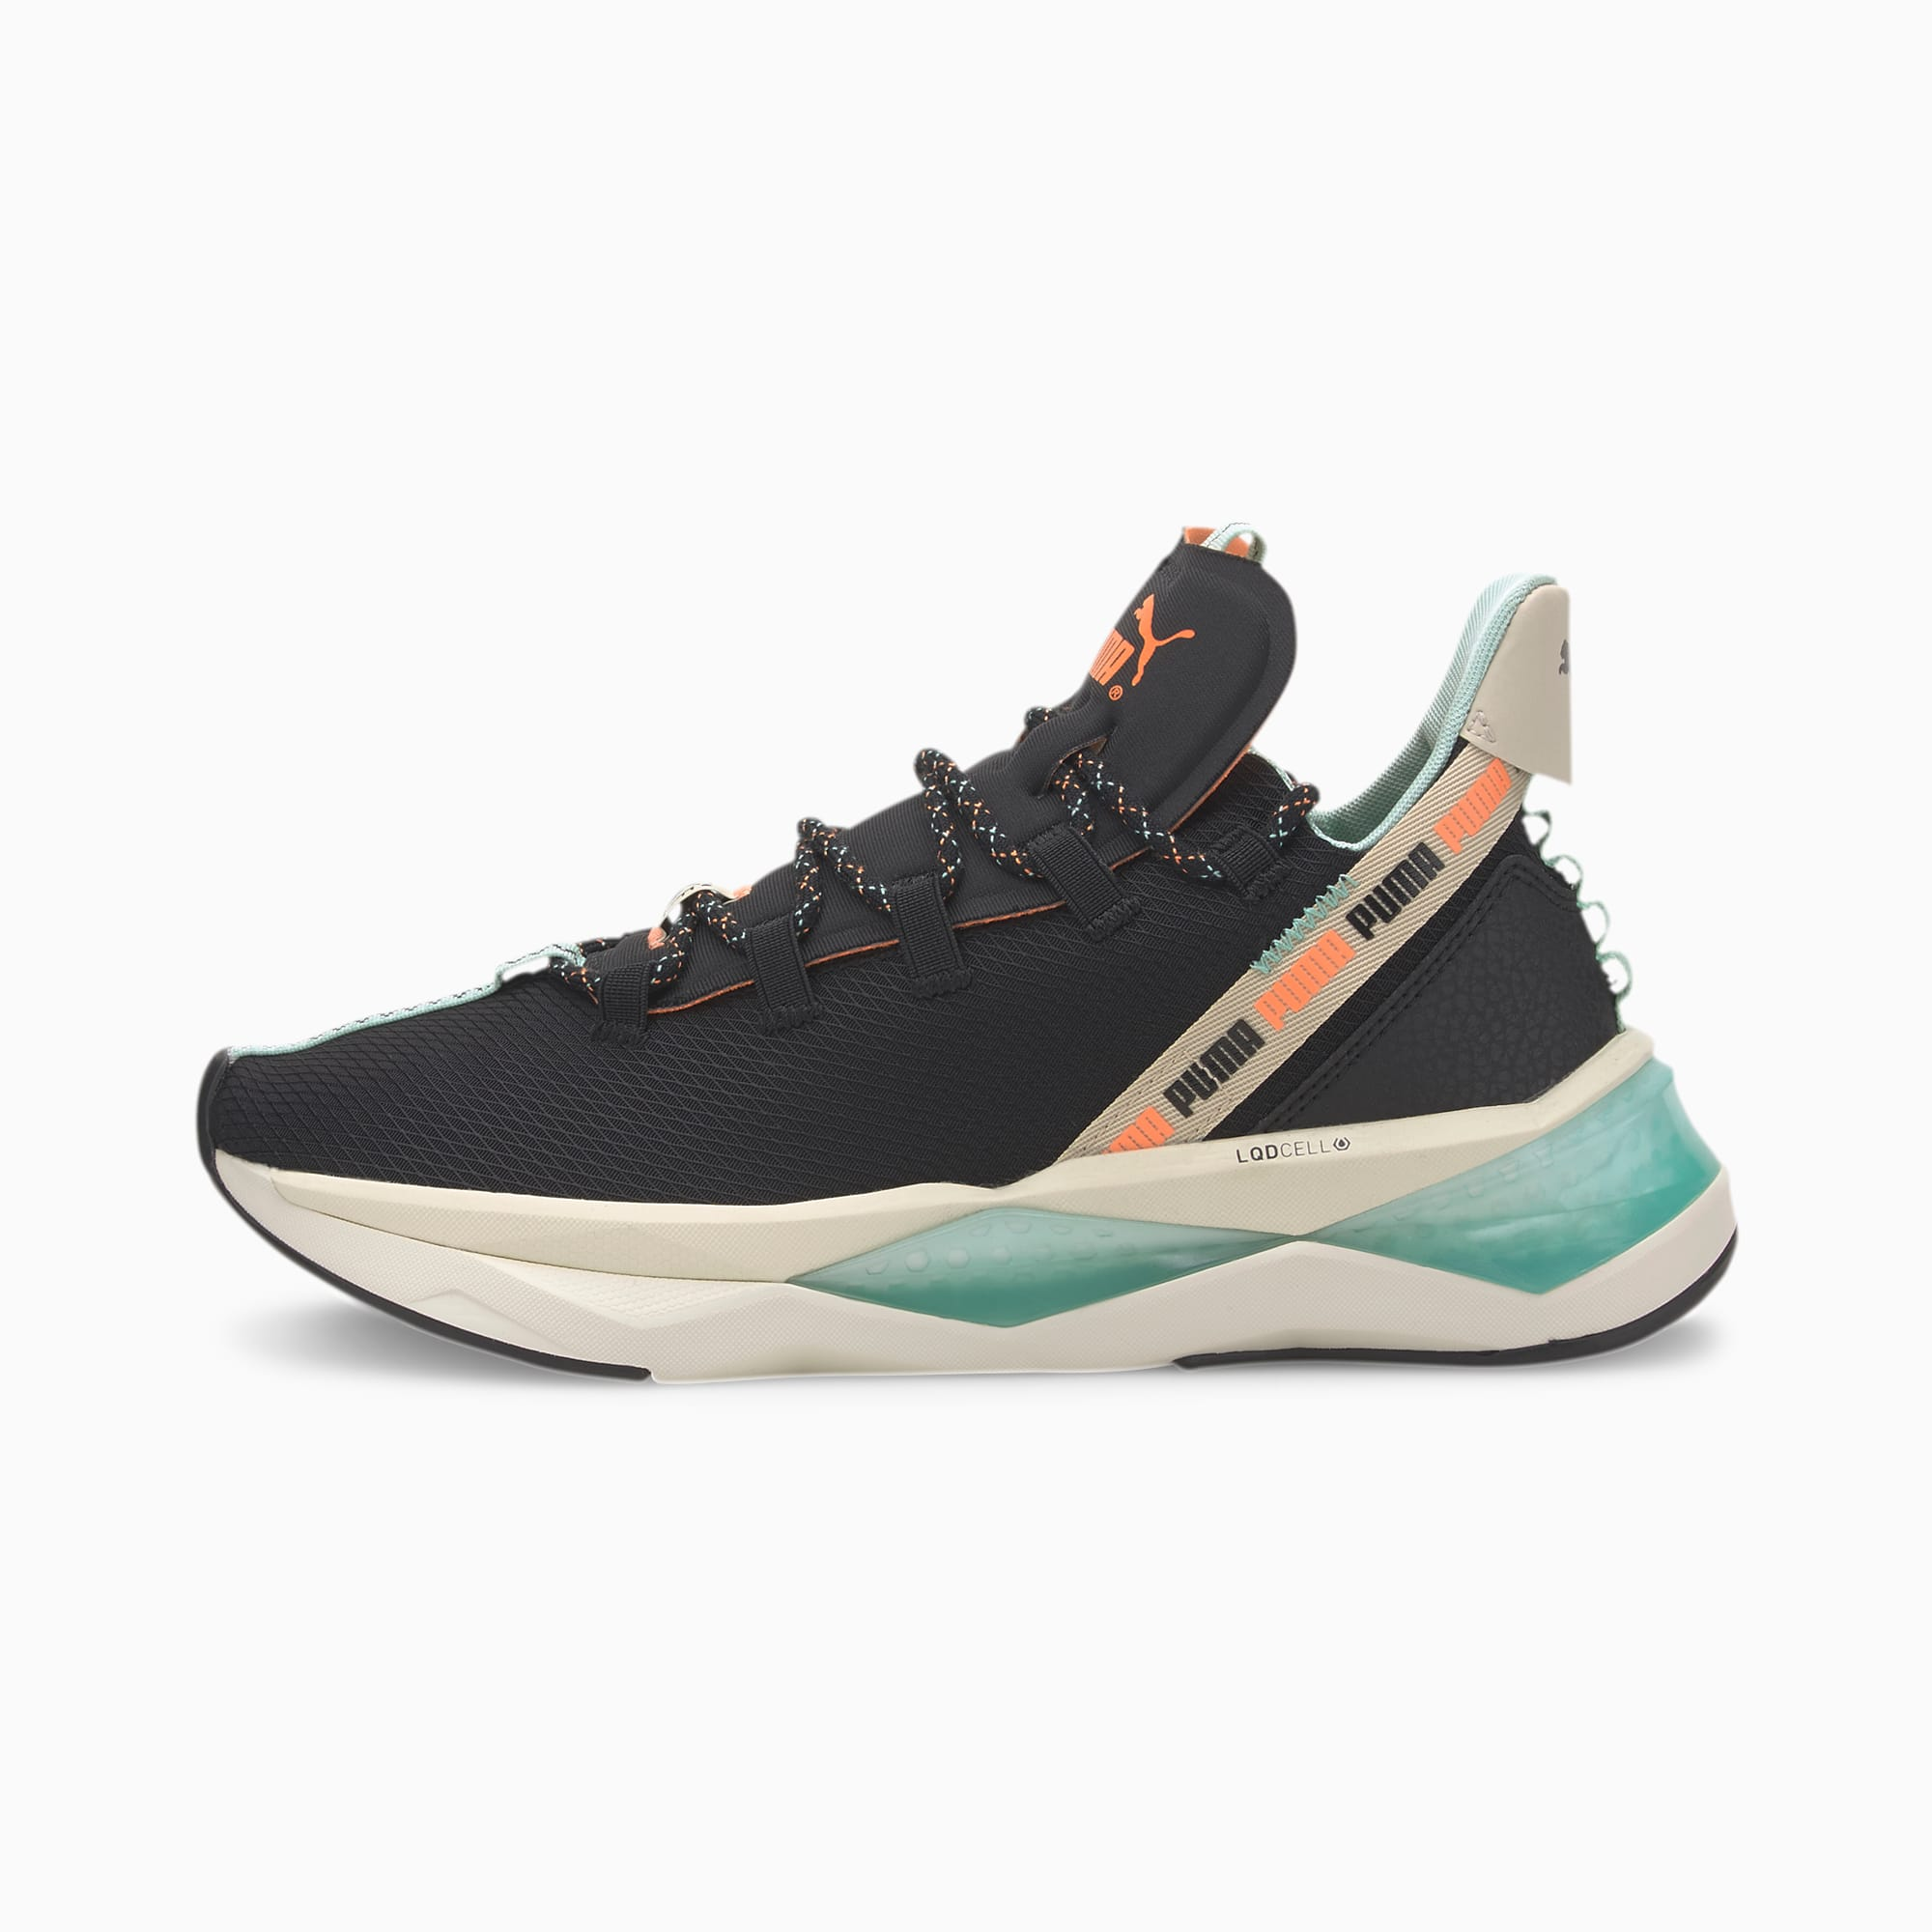 PUMA x FIRST MILE LQDCELL Shatter Trail Women's Training Shoes